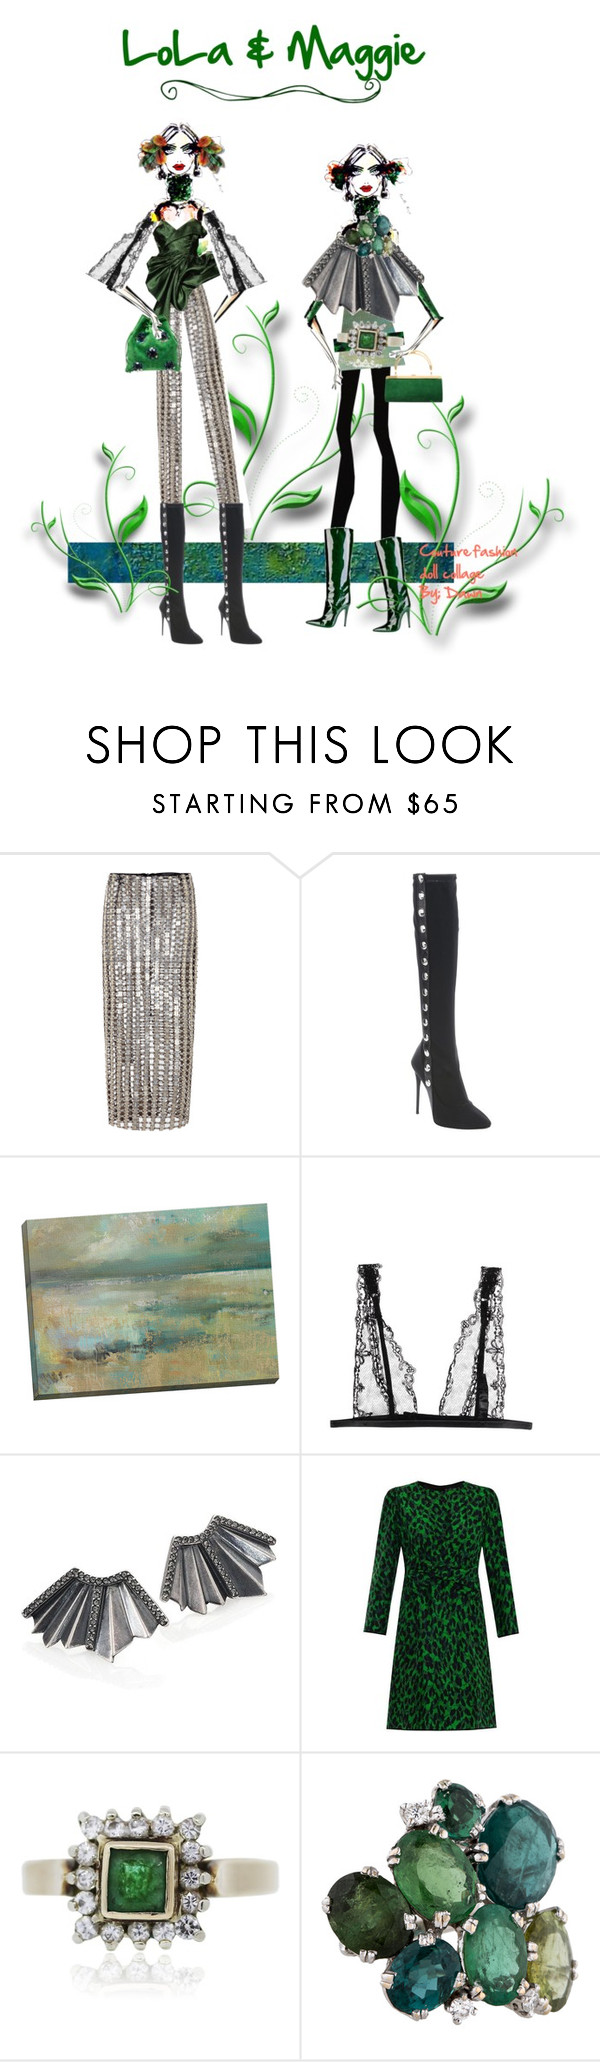 """""""LoLa & Maggie"""" by dawn-lindenberg ❤ liked on Polyvore featuring Wes Gordon, Giuseppe Zanotti, Guy Laroche, La Perla, Giles & Brother, Marc Jacobs, Miu Miu, women's clothing, women and female"""